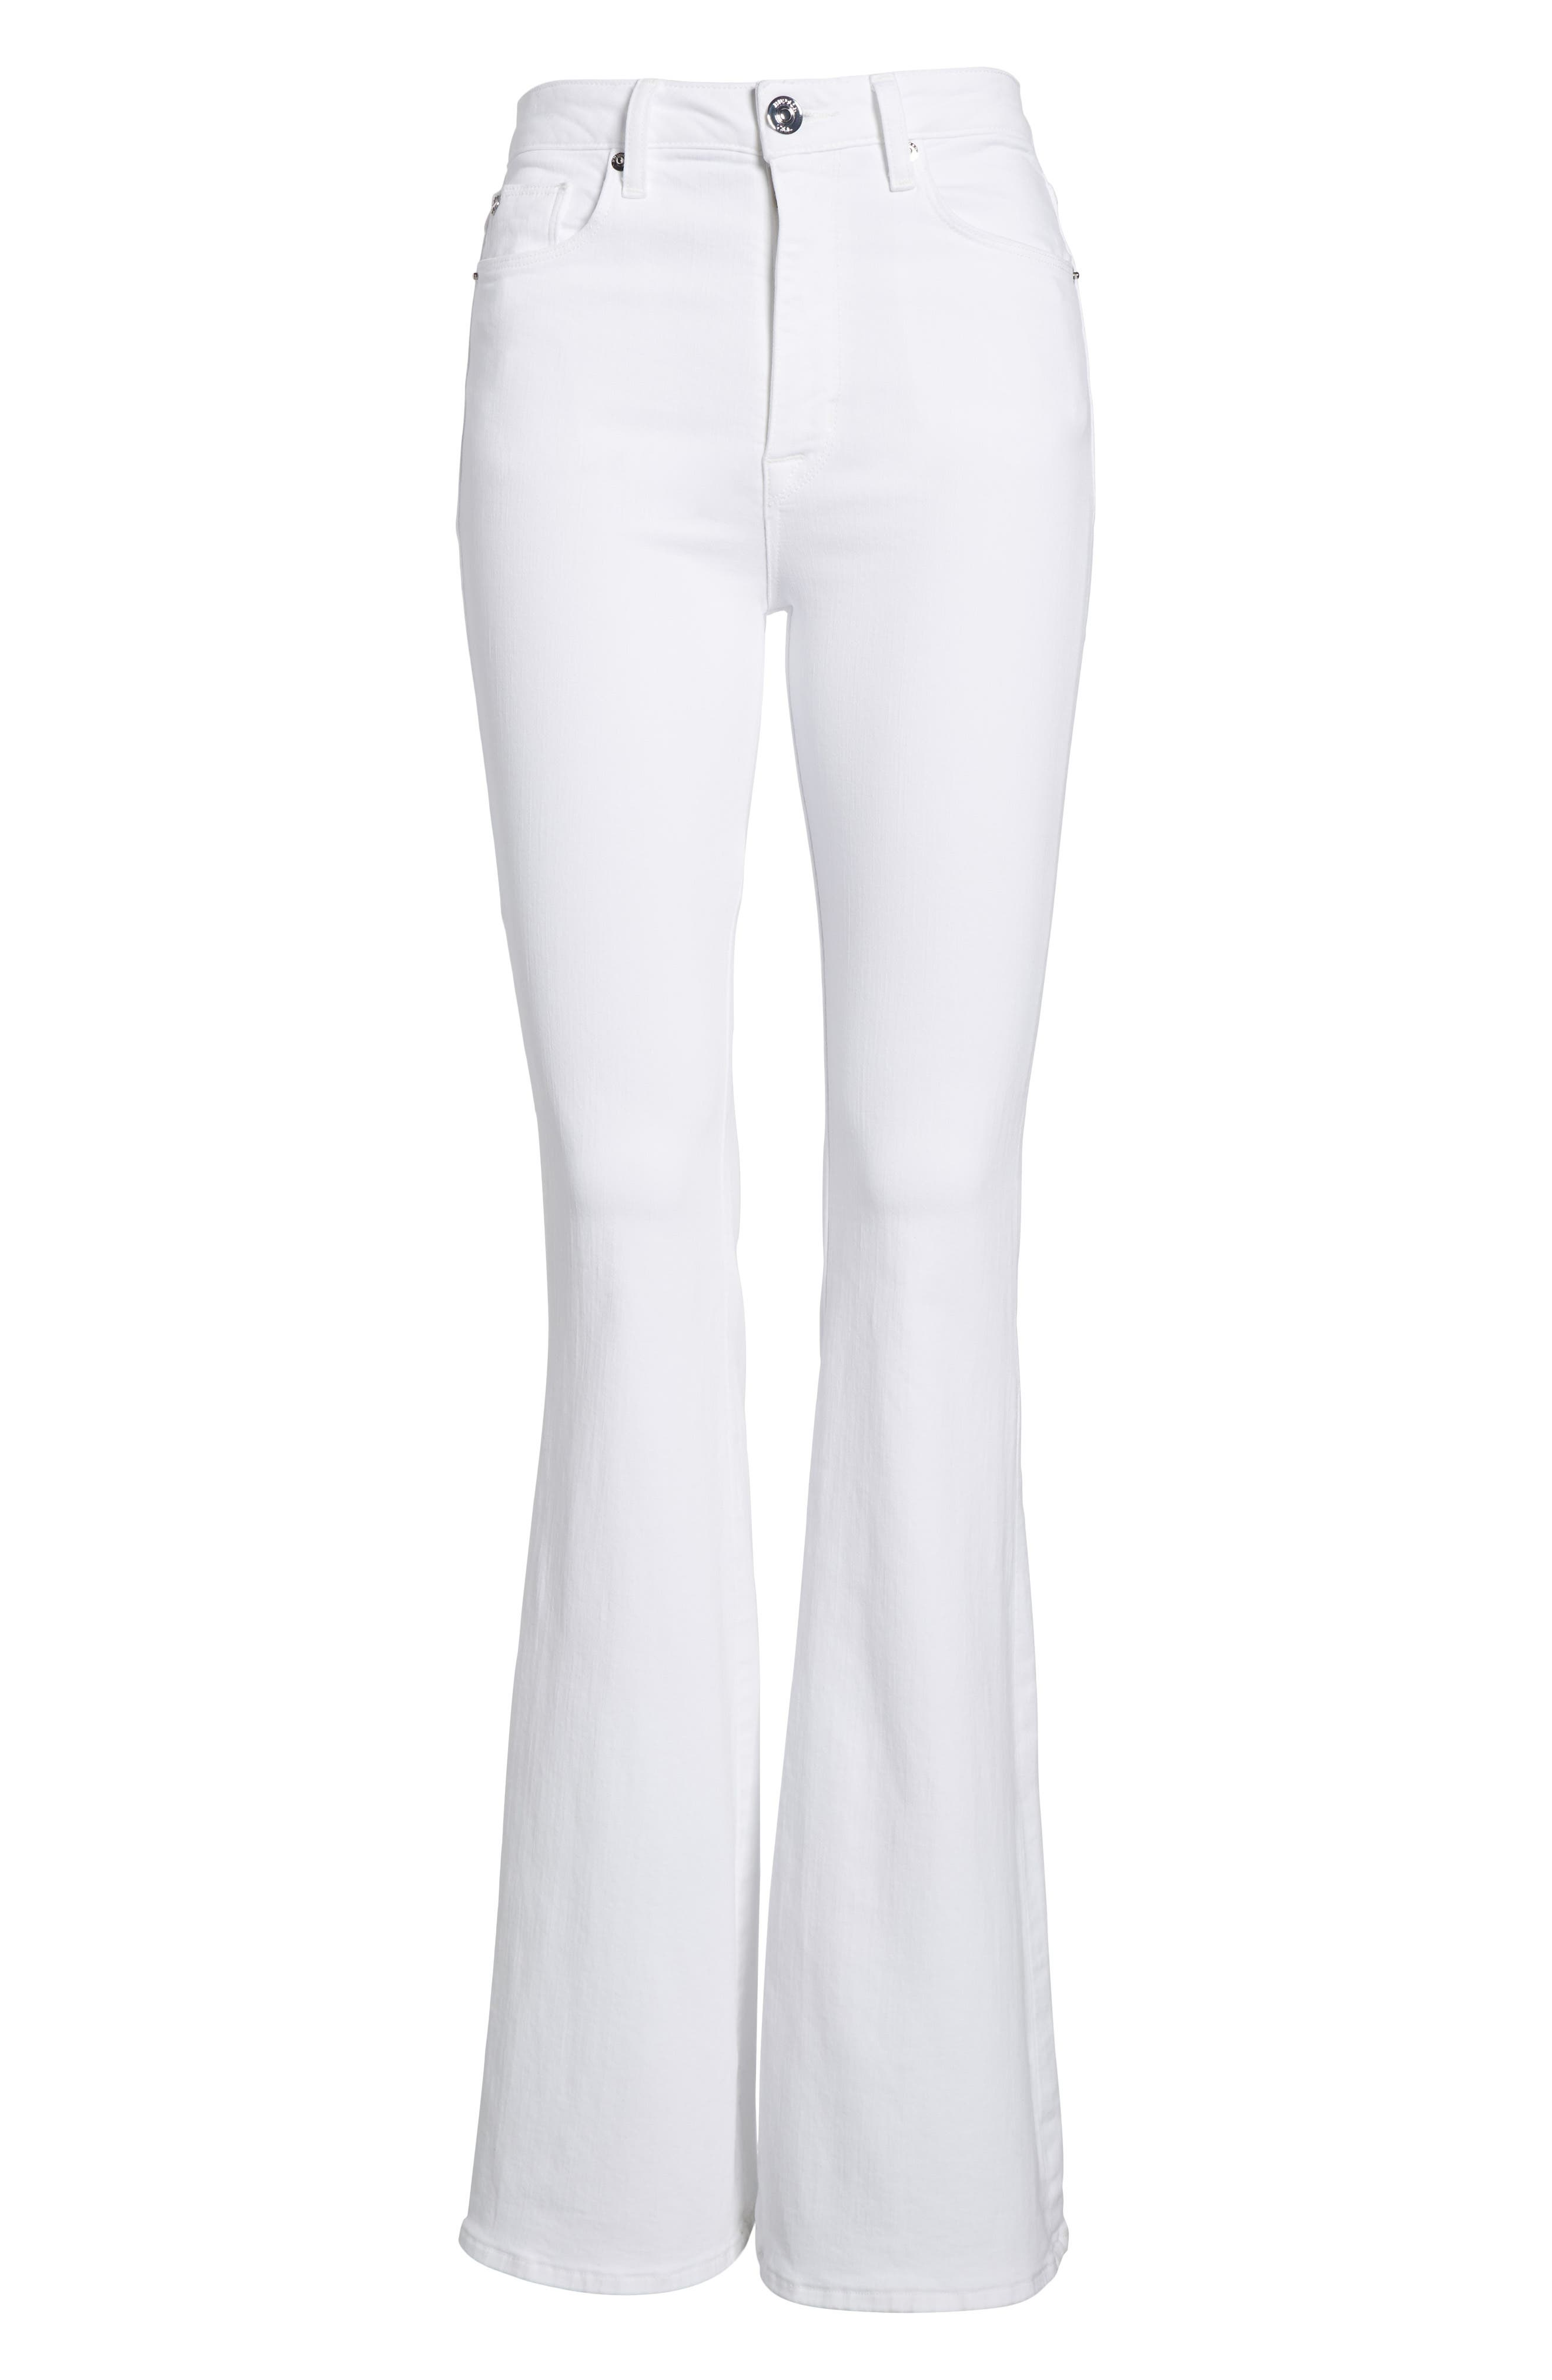 Holly High Waist Flare Jeans,                             Alternate thumbnail 7, color,                             Optical White